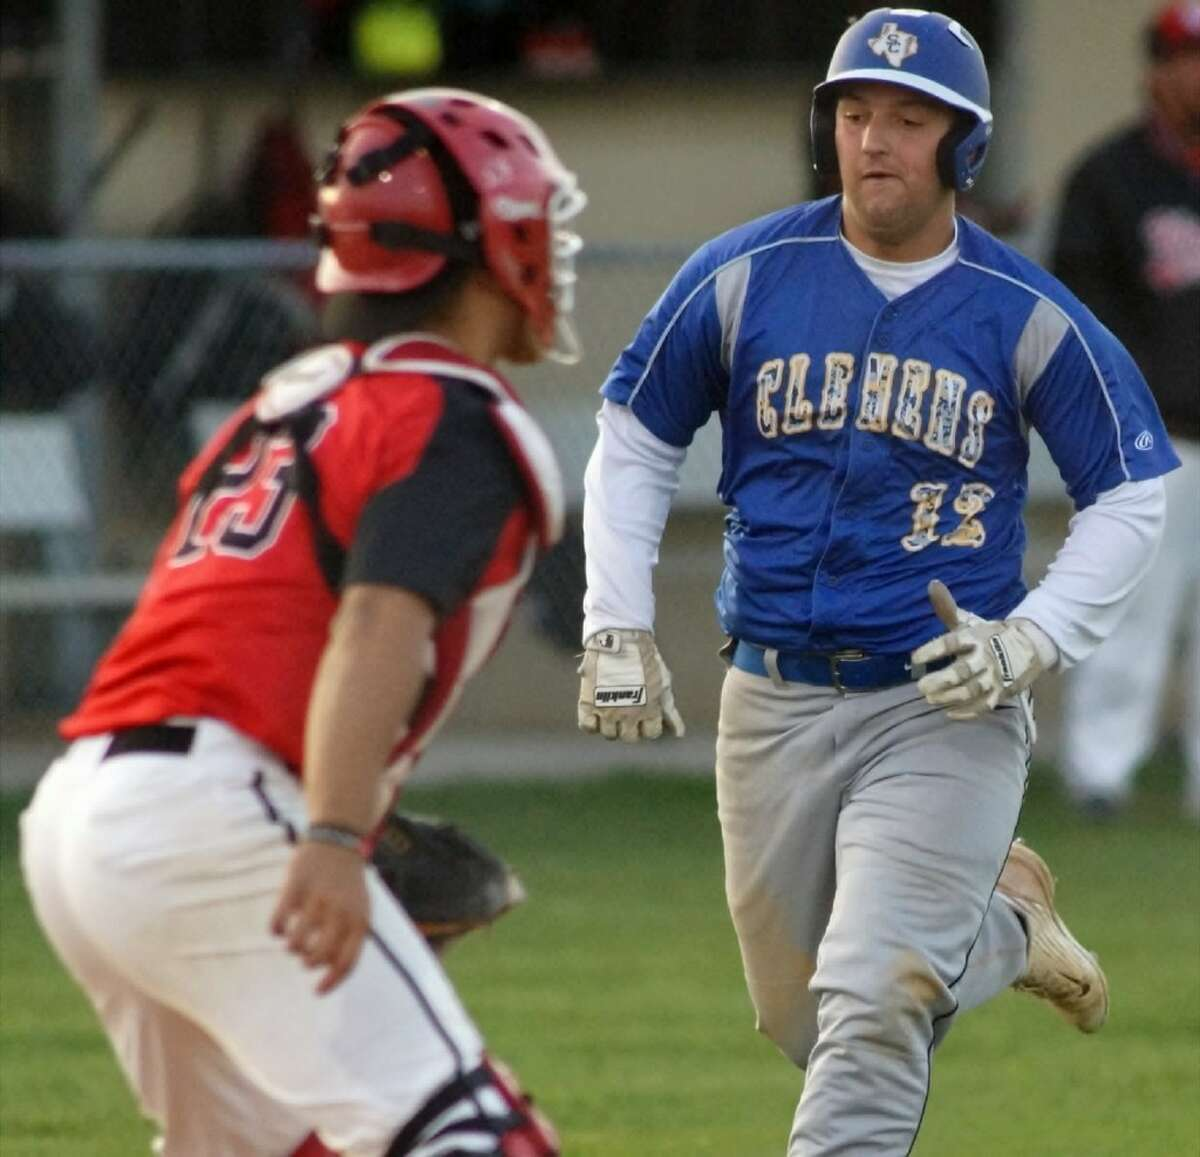 Clemens' Cody Sasser (12) scores from first base on a Tyler Smith double in the second inning of Clemens' 11-2 win Friday at Wagner.